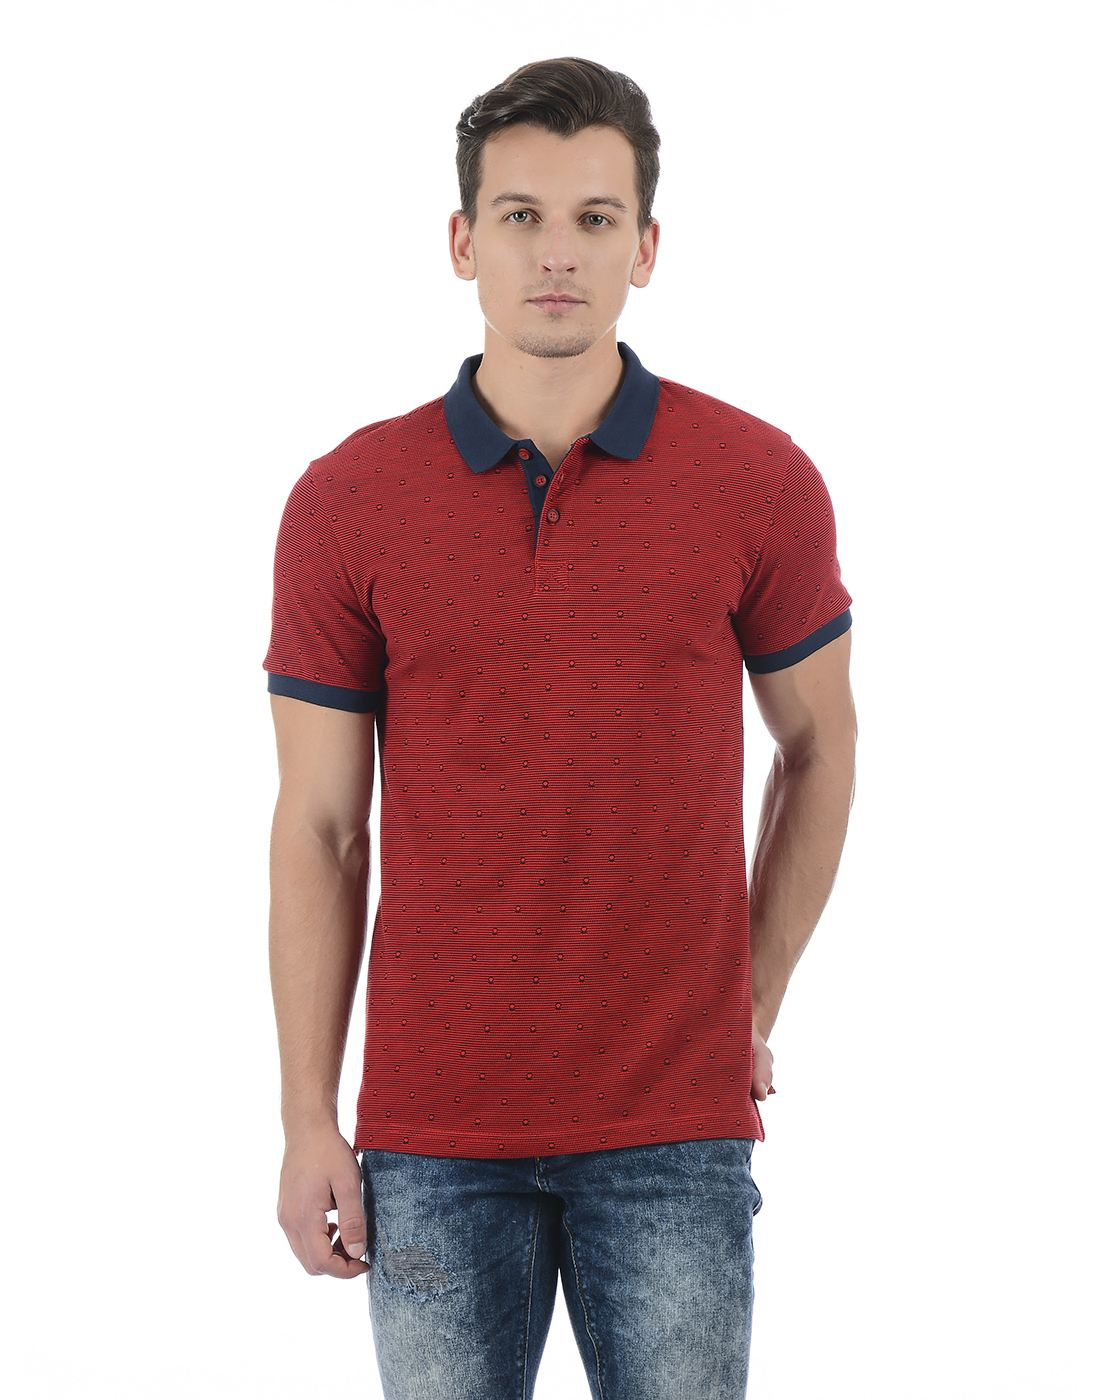 United Colors of Benetton Men's Red Polo Neck T-shirt